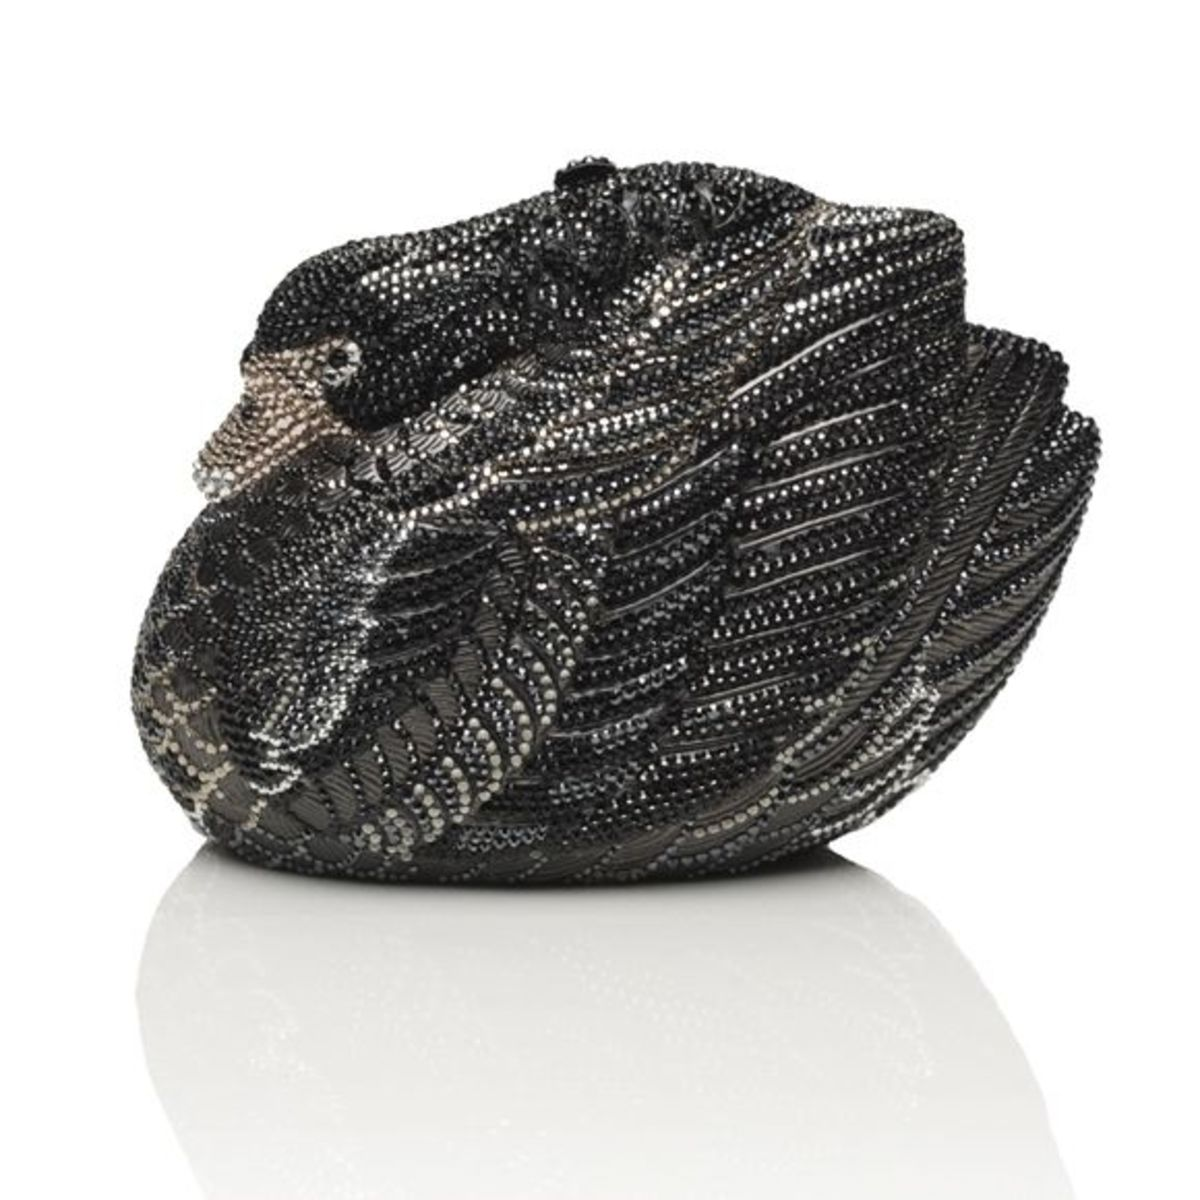 """ODILEPrice: $4,295Swan minaudière with feathers defined in deep toned crystal with blush accents. Top snap closure, 19"""" chain. Graceful and elegant."""